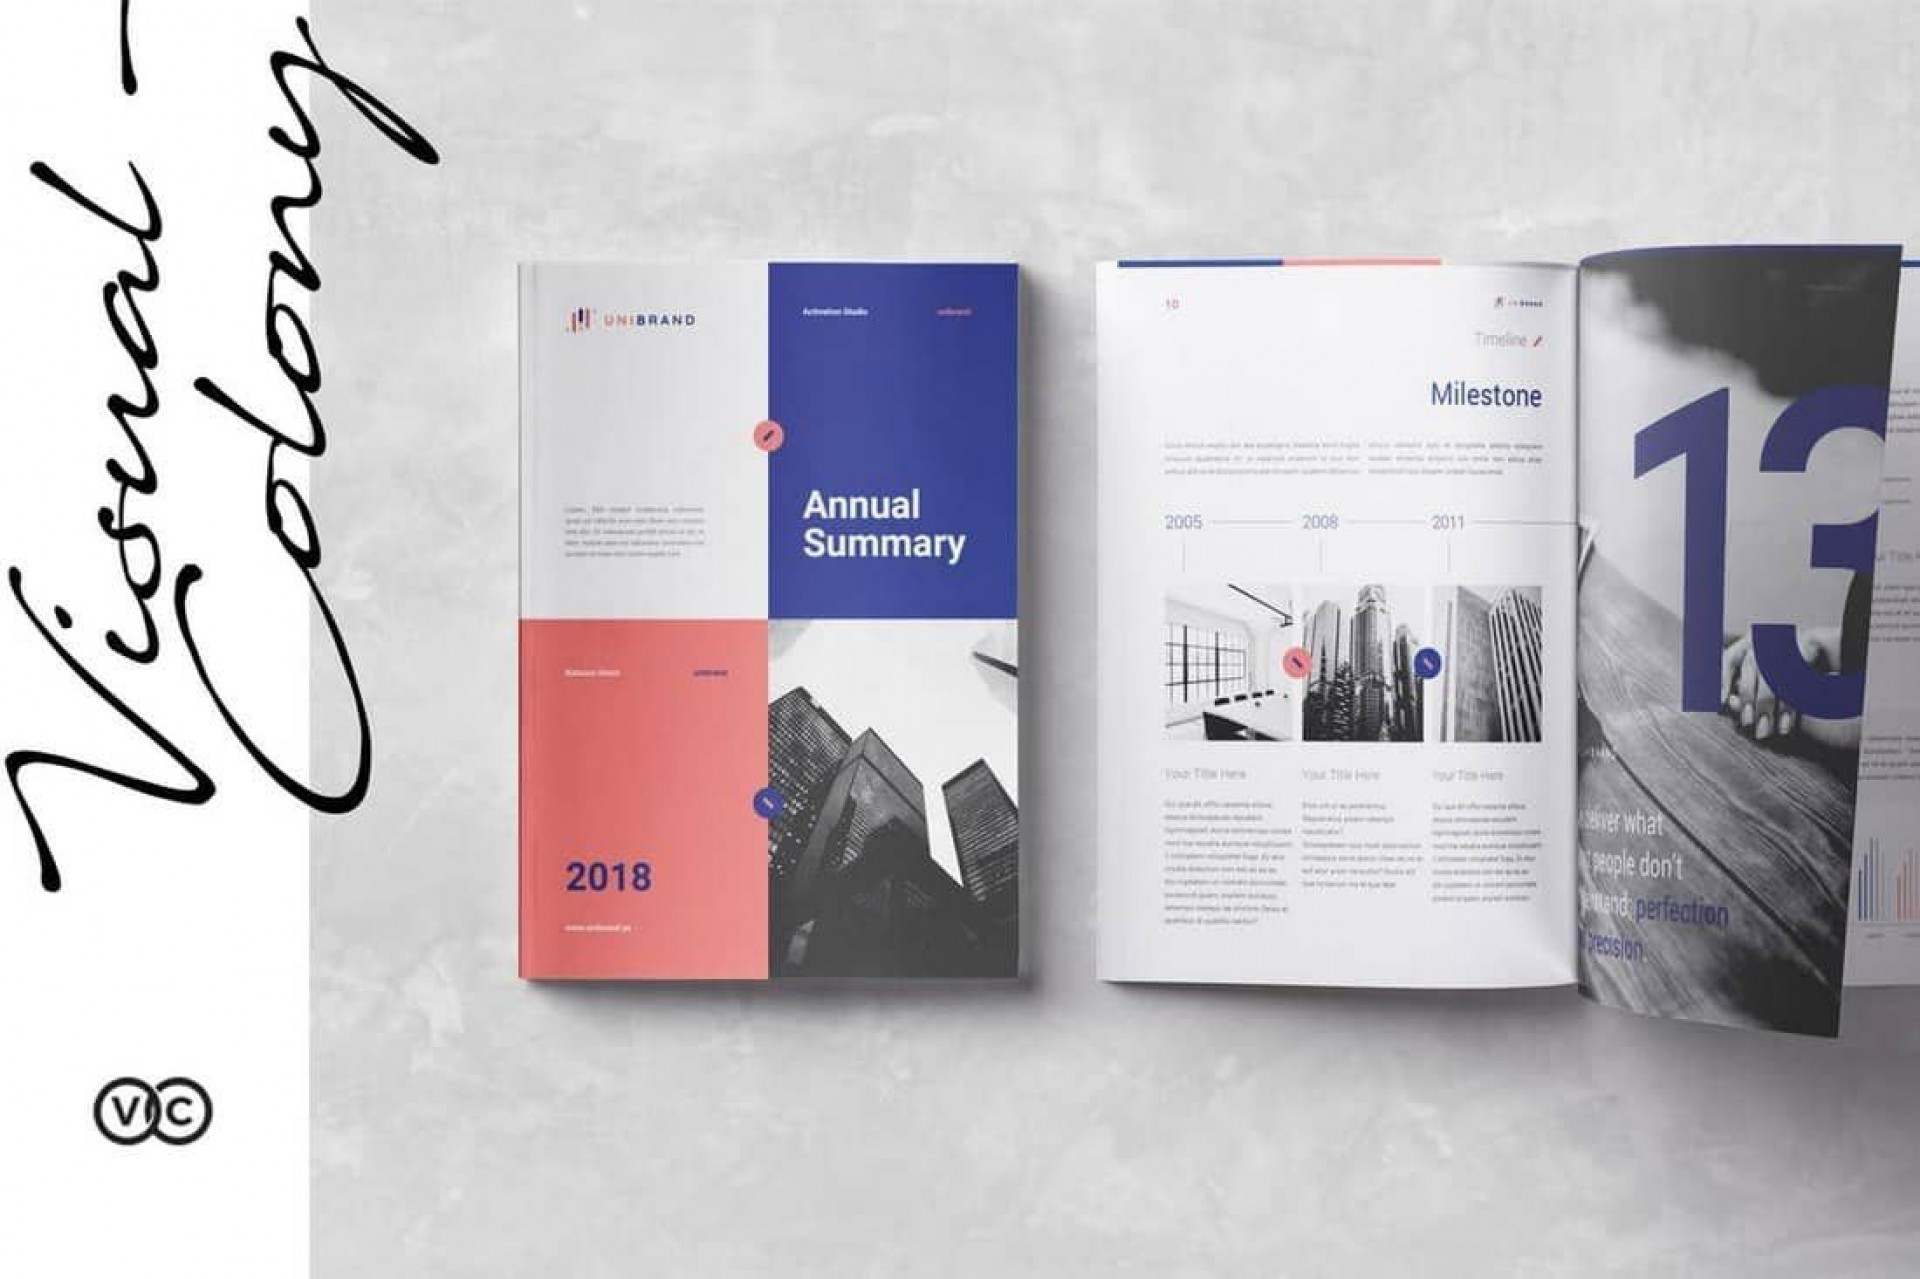 009 Astounding Annual Report Design Template Indesign High Definition  Free Download1920